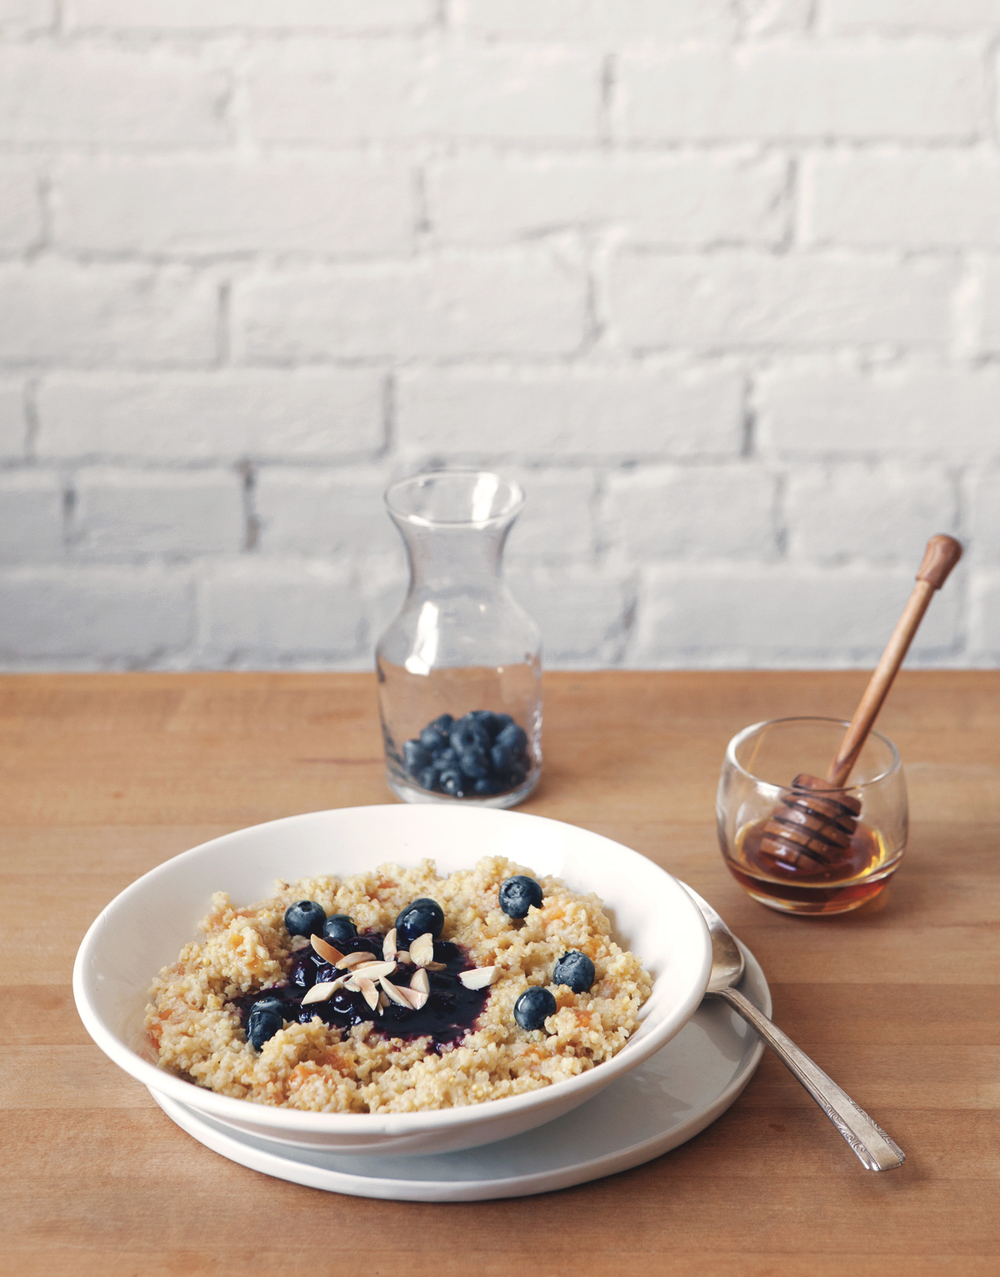 Honey-Apricot-Millet-with-Blueberry-Compote-and-Toasted-Almonds_01.jpg